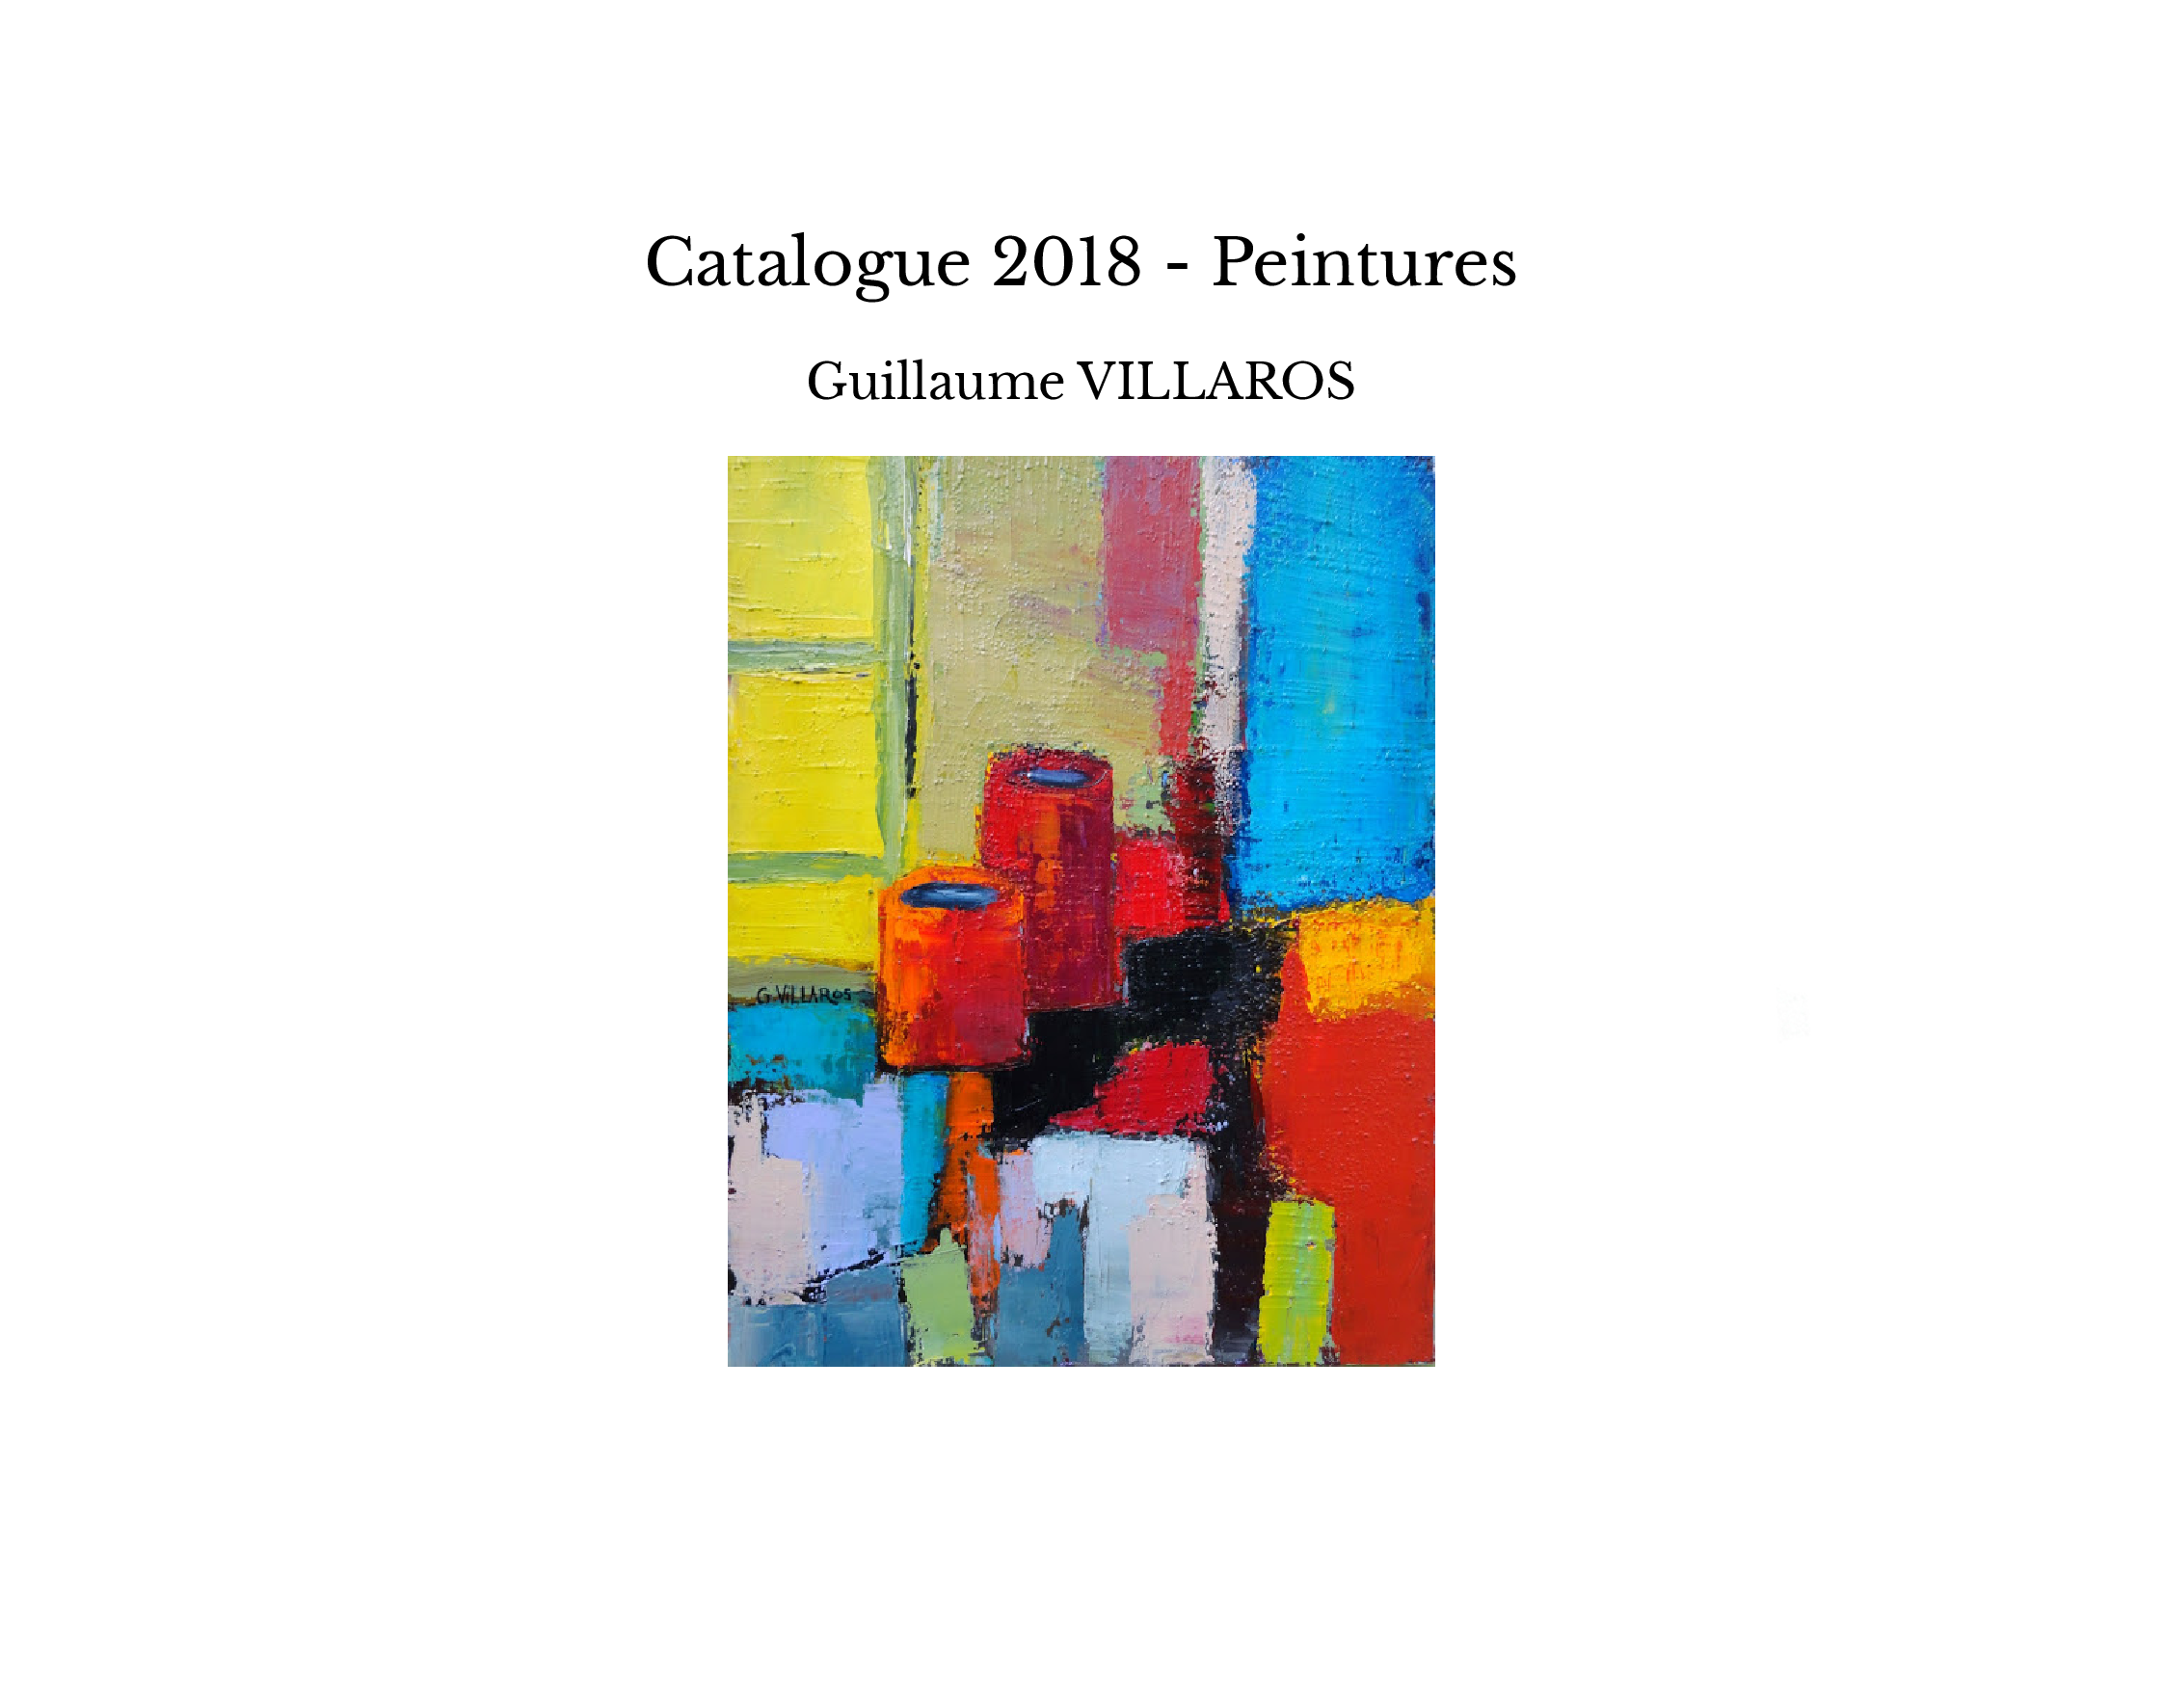 Catalogue 2018 - Peintures